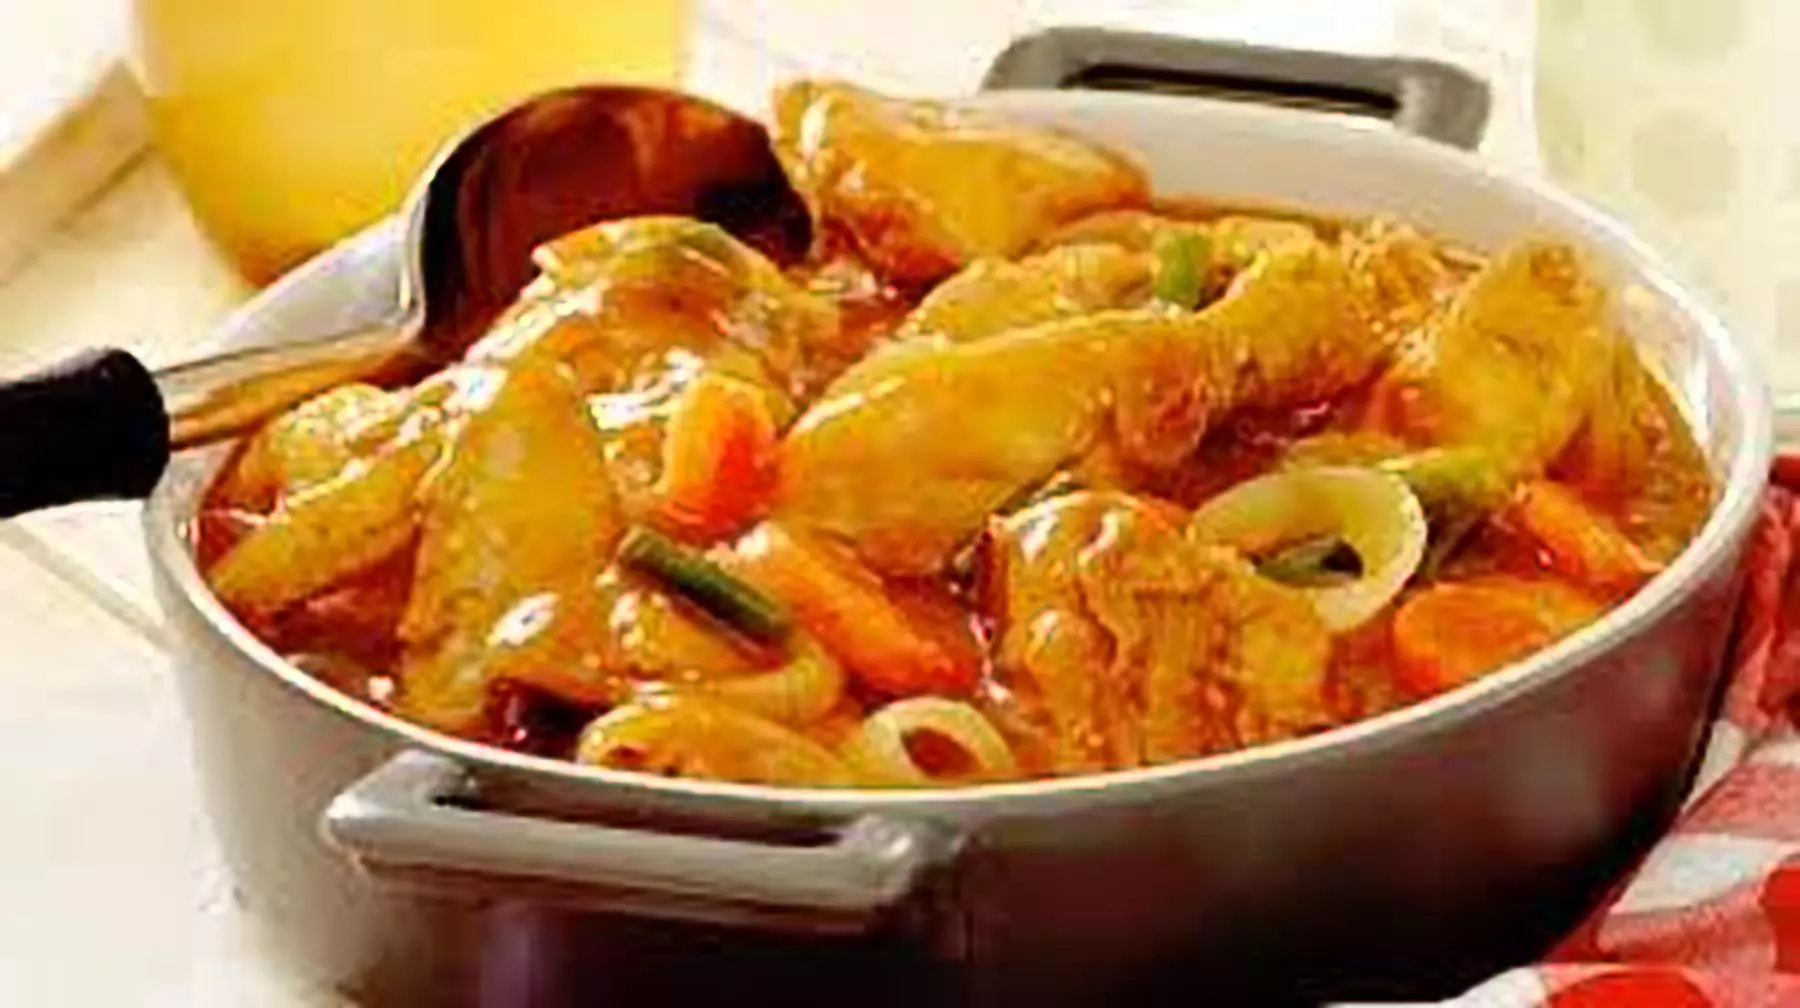 7 steps to winning over a Luhya bae with this mouth-watering chicken dish